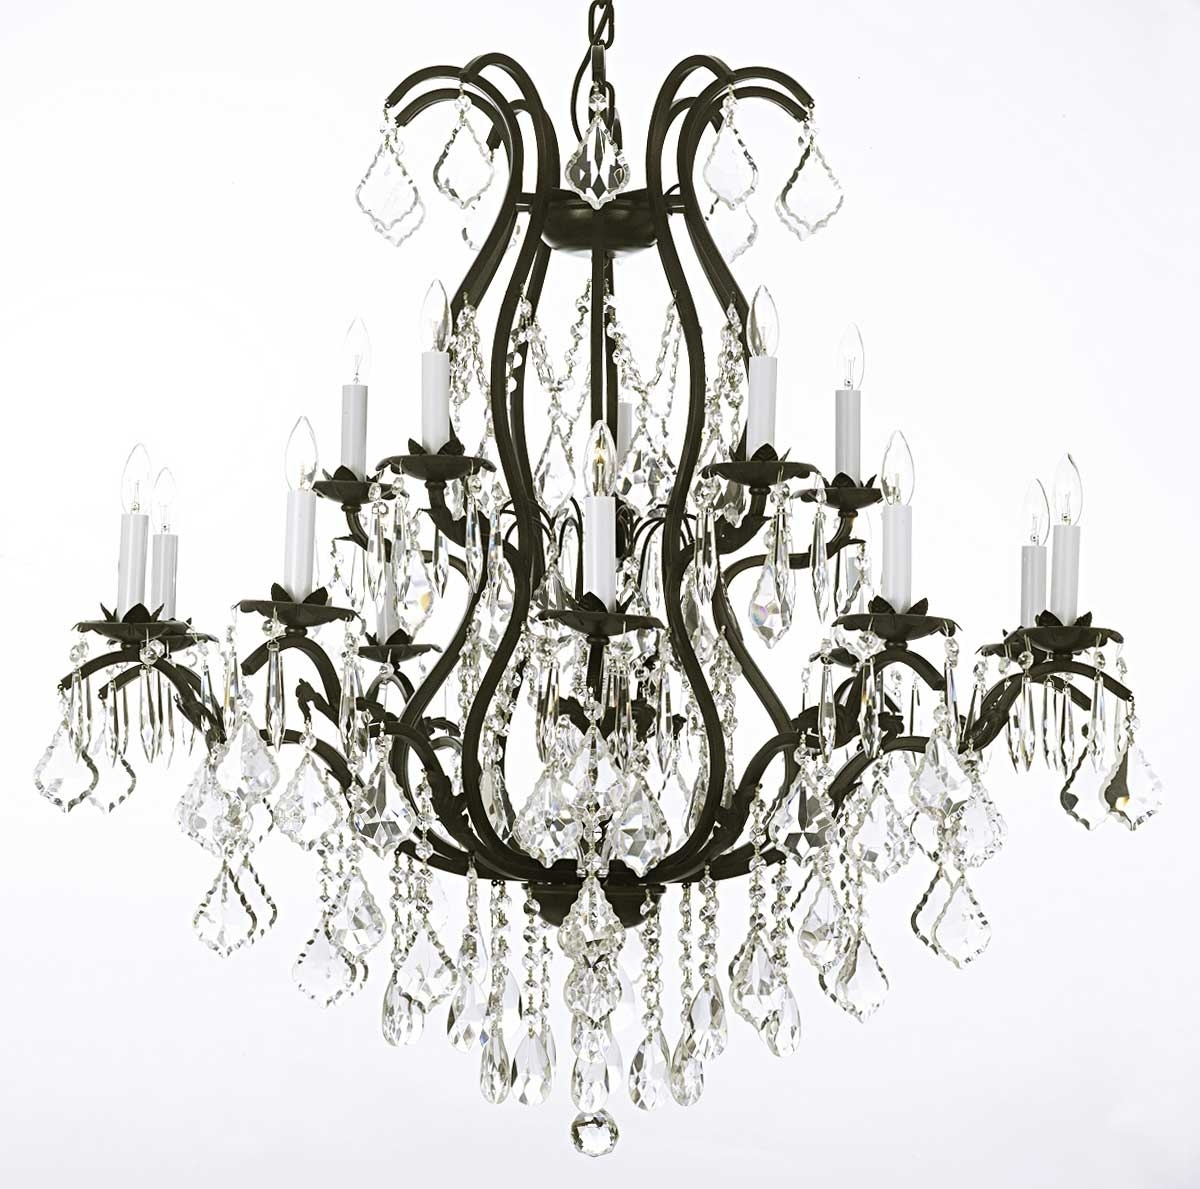 Preferred Modern Wrought Iron Chandeliers With Modern Black Wrought Iron And Crystal Chandeliers Plus Lamp Holder (View 14 of 20)